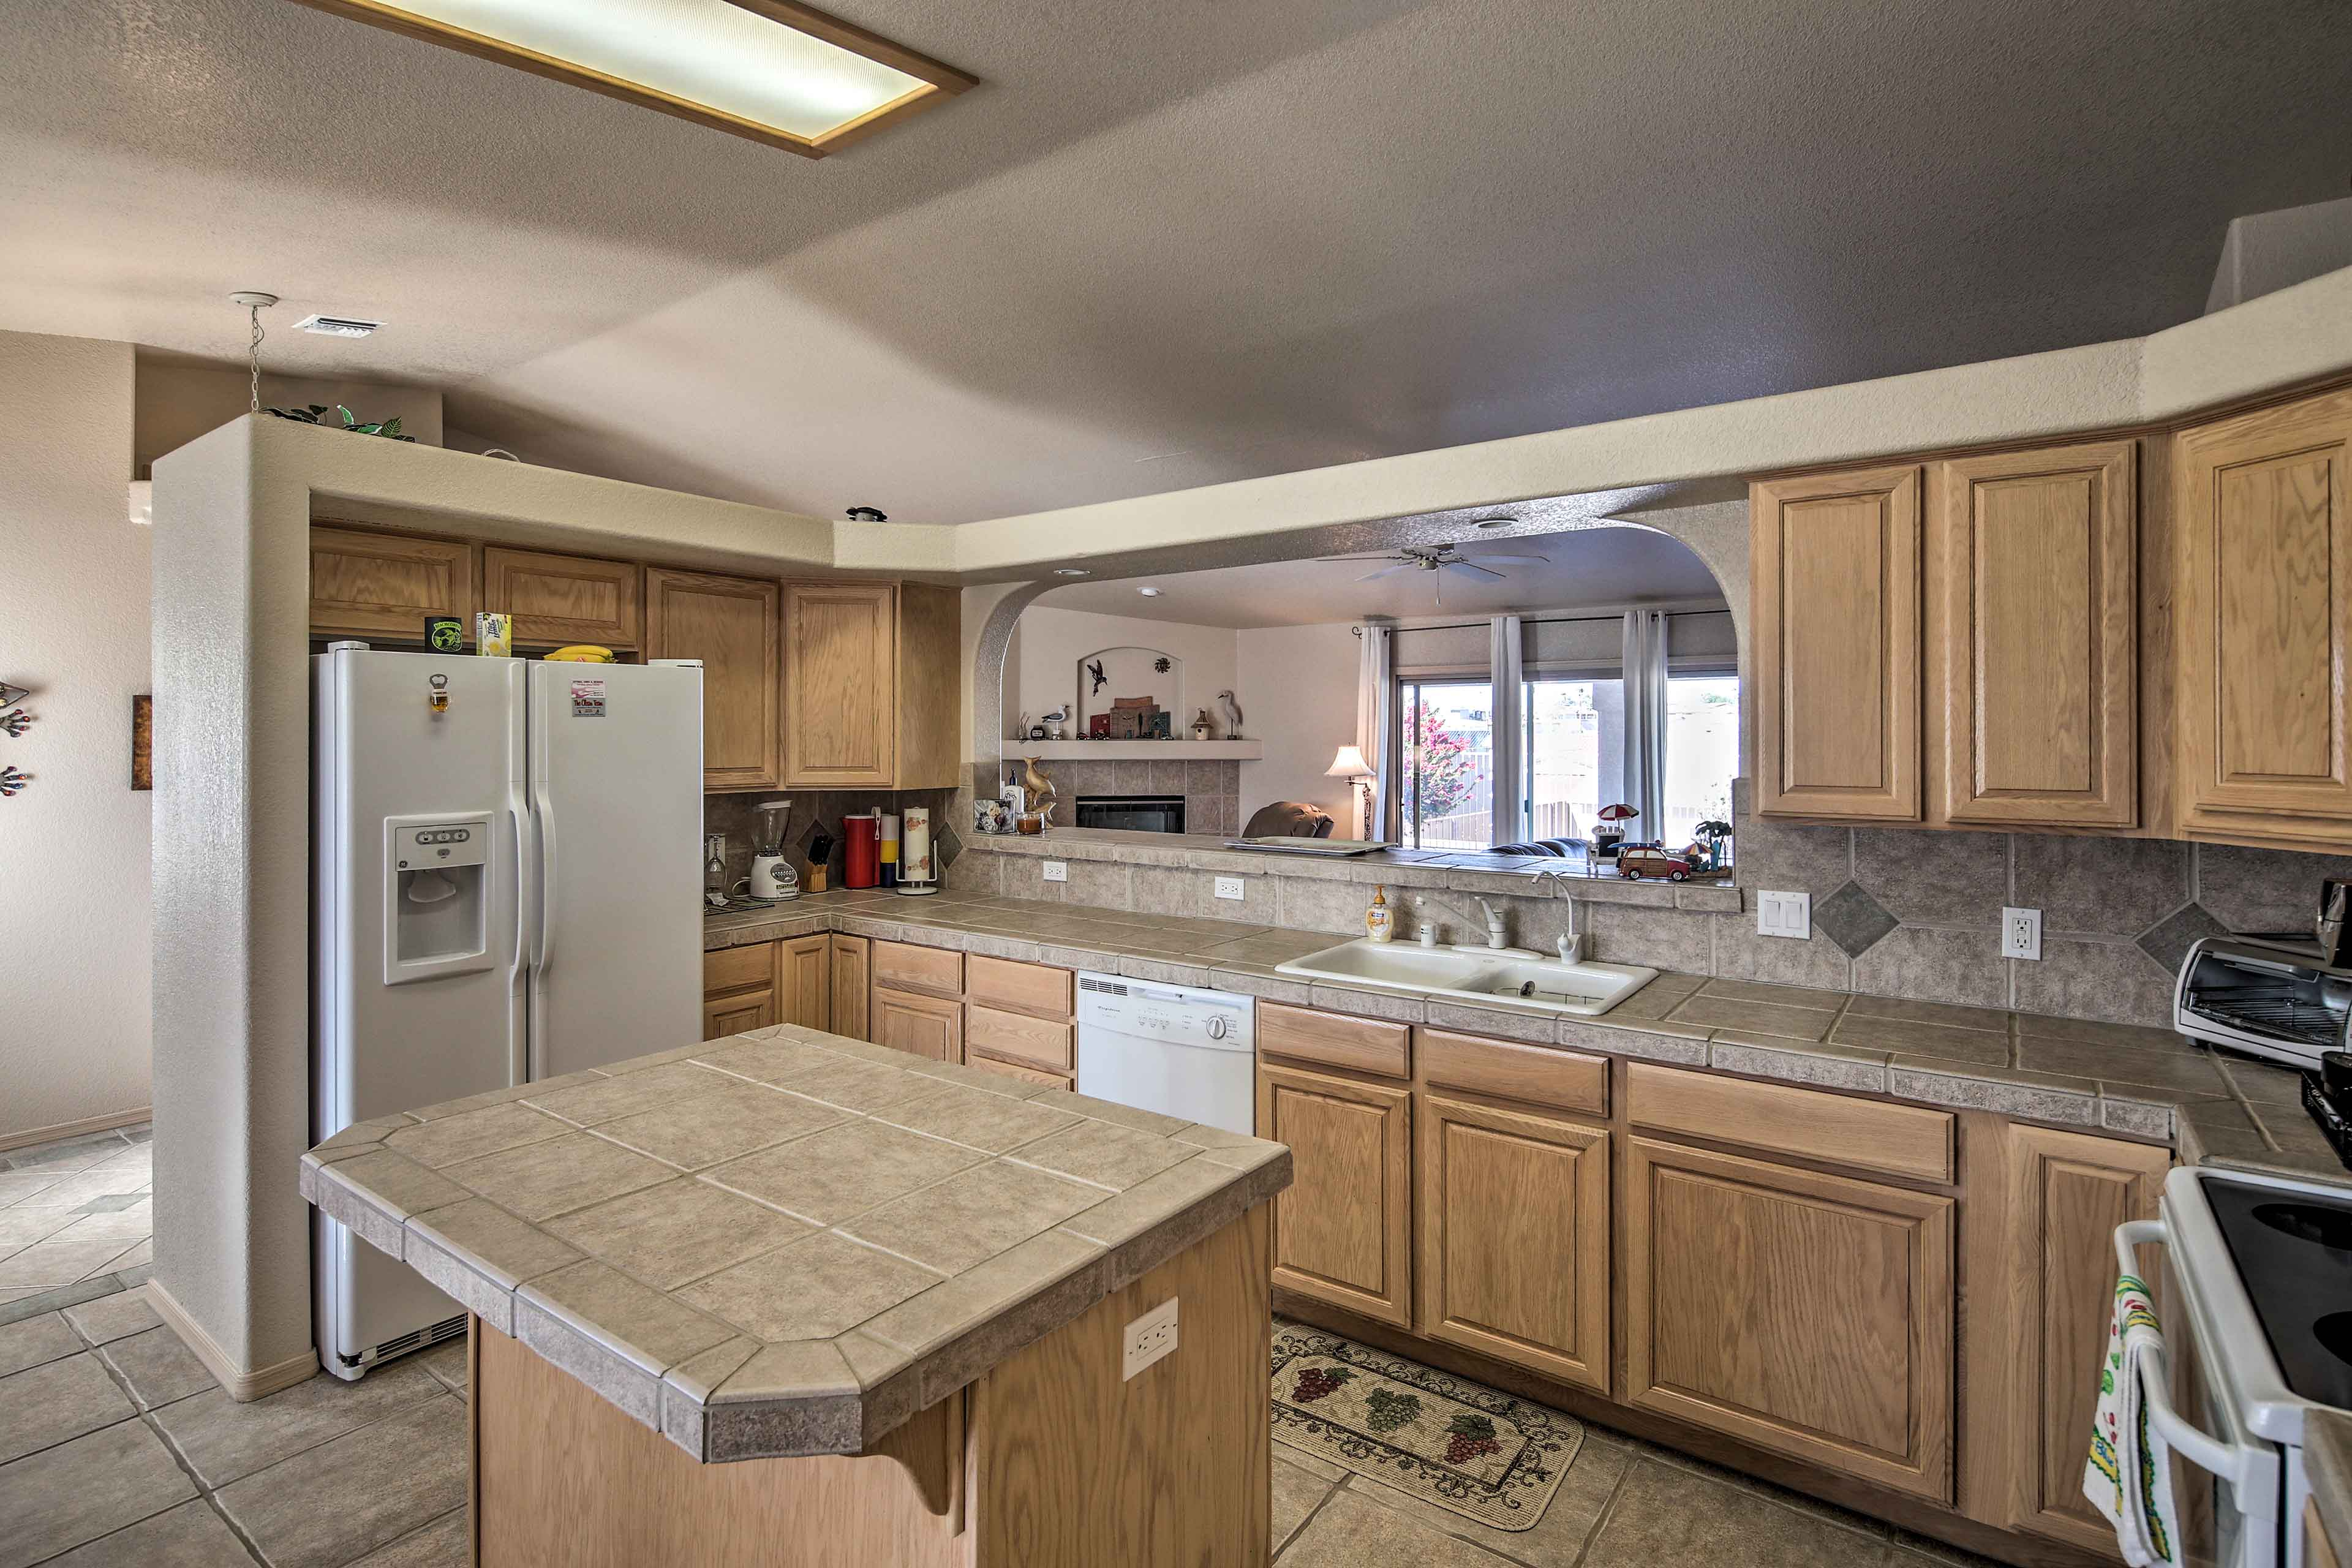 The family room opens into the kitchen through a large breakfast bar.